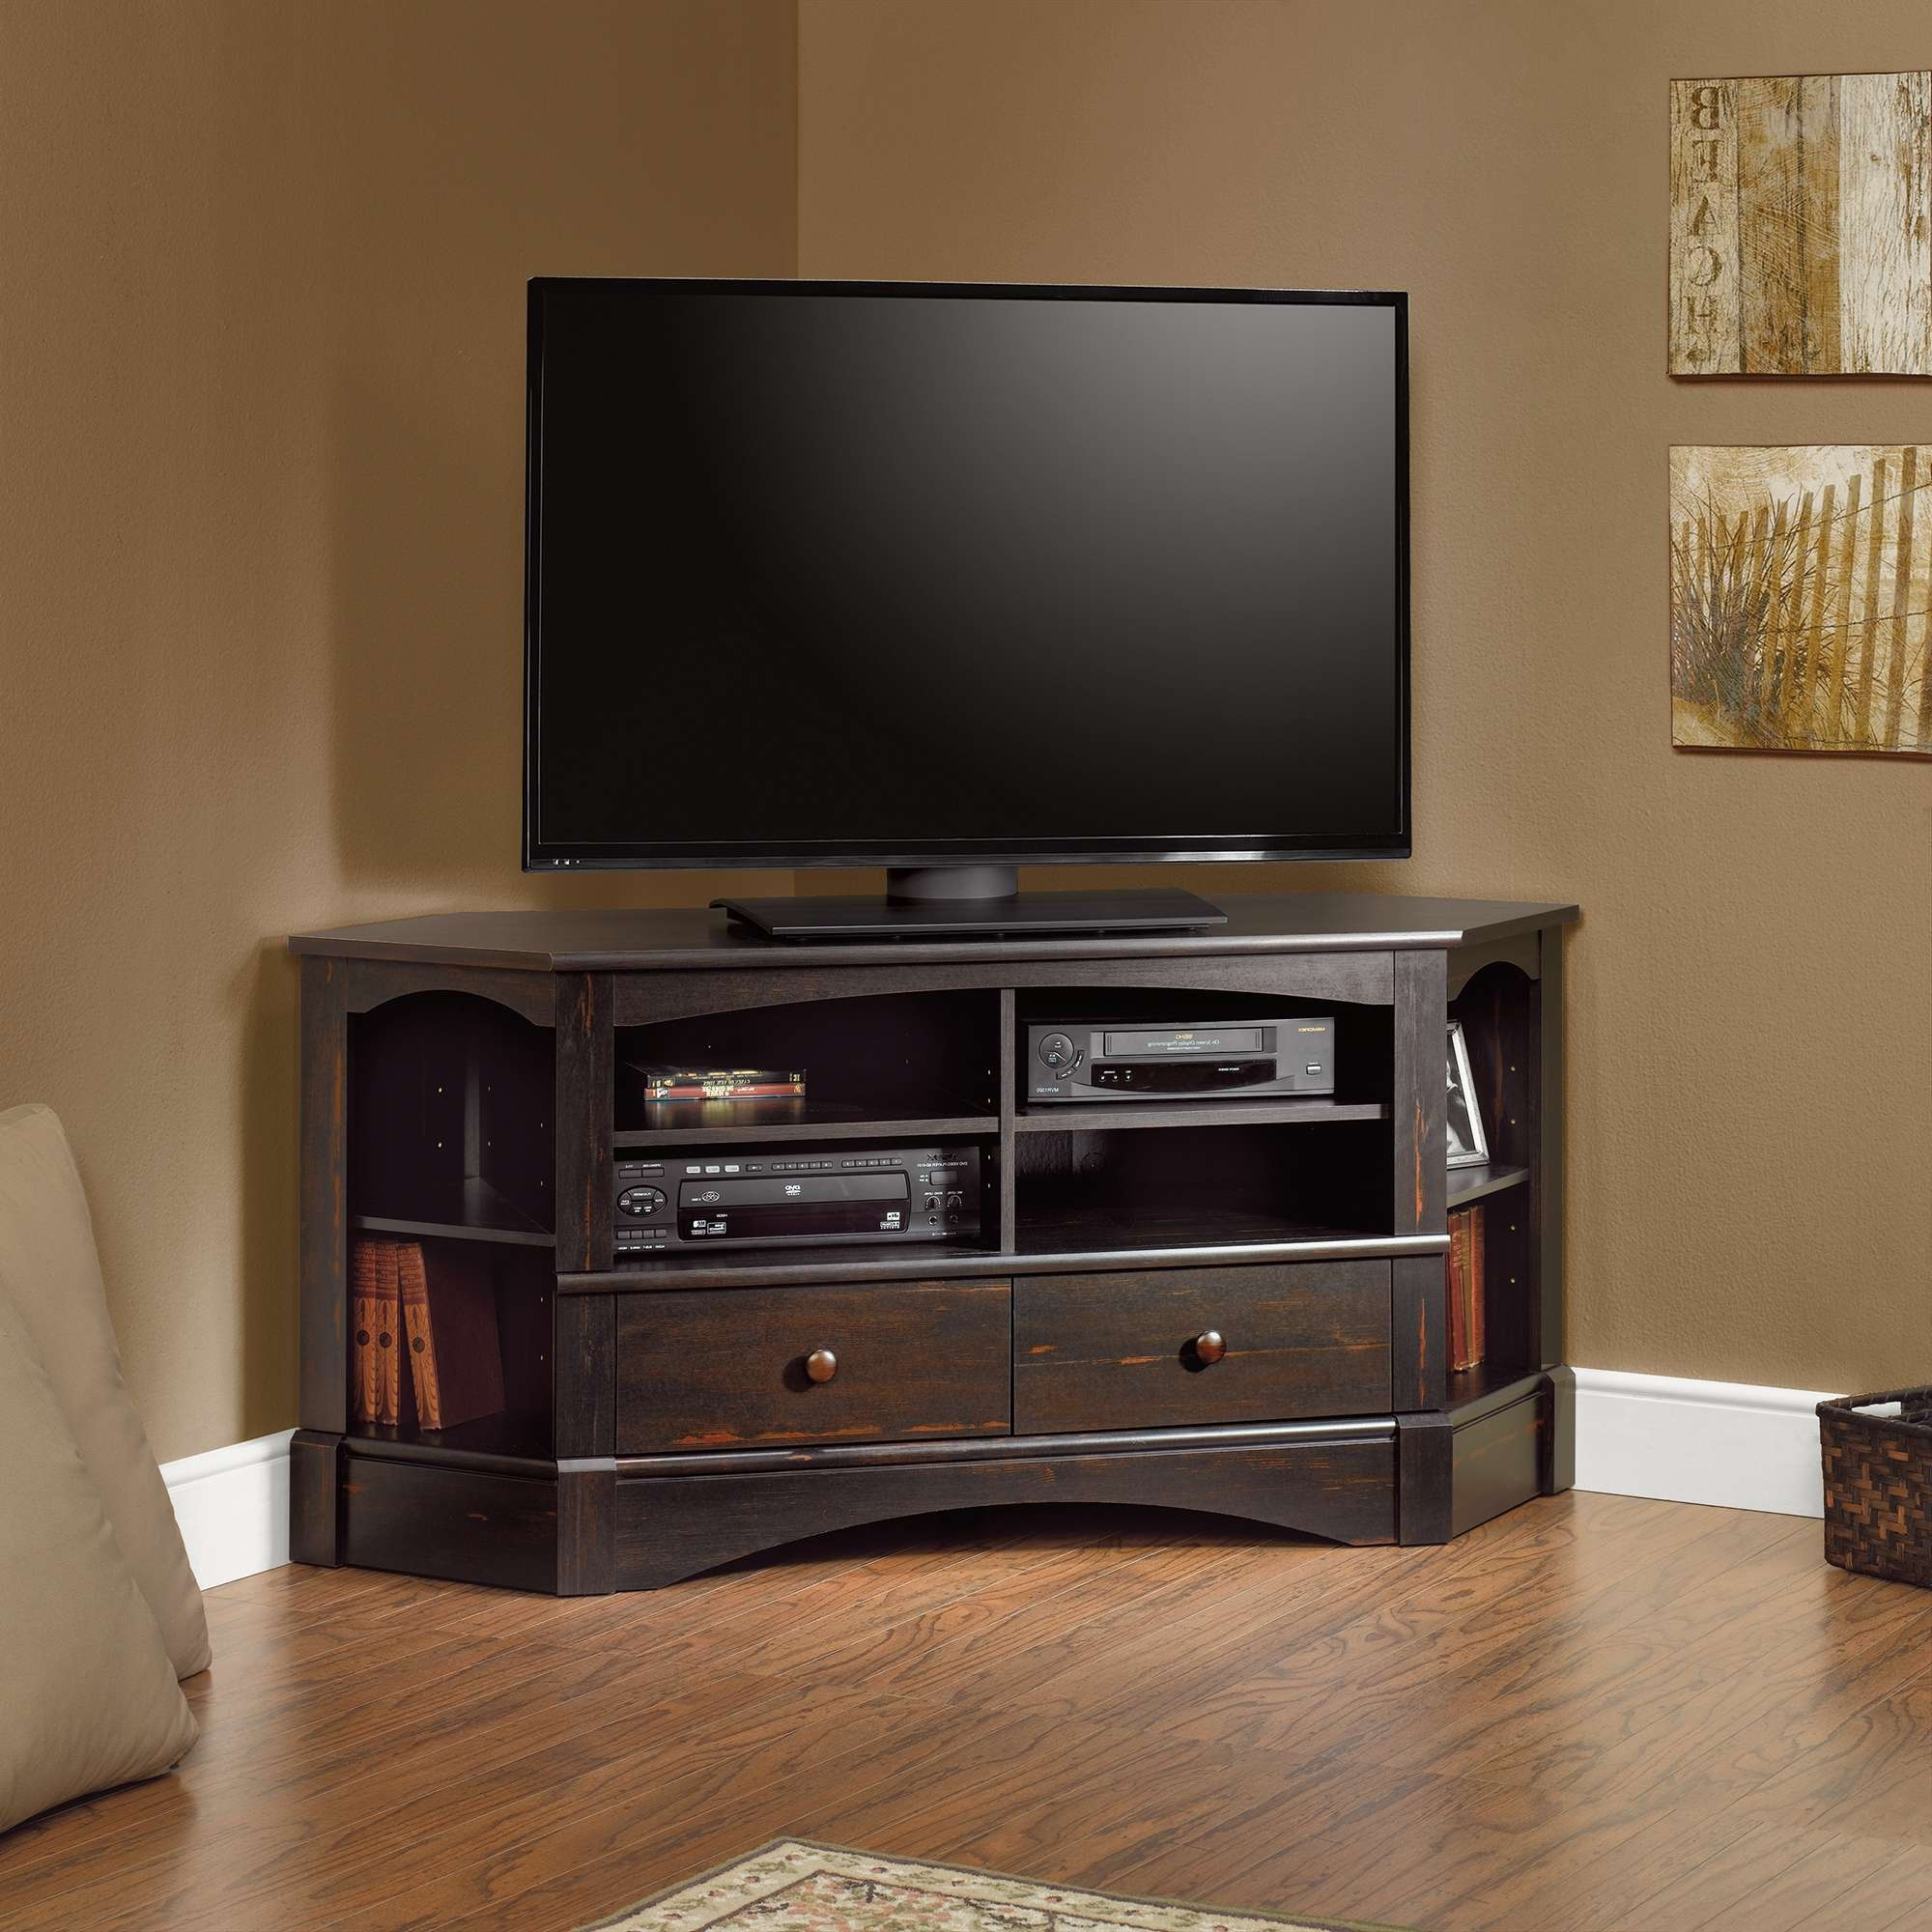 Harbor View | Corner Entertainment Credenza | 402902 | Sauder For 61 Inch Tv Stands (View 4 of 15)